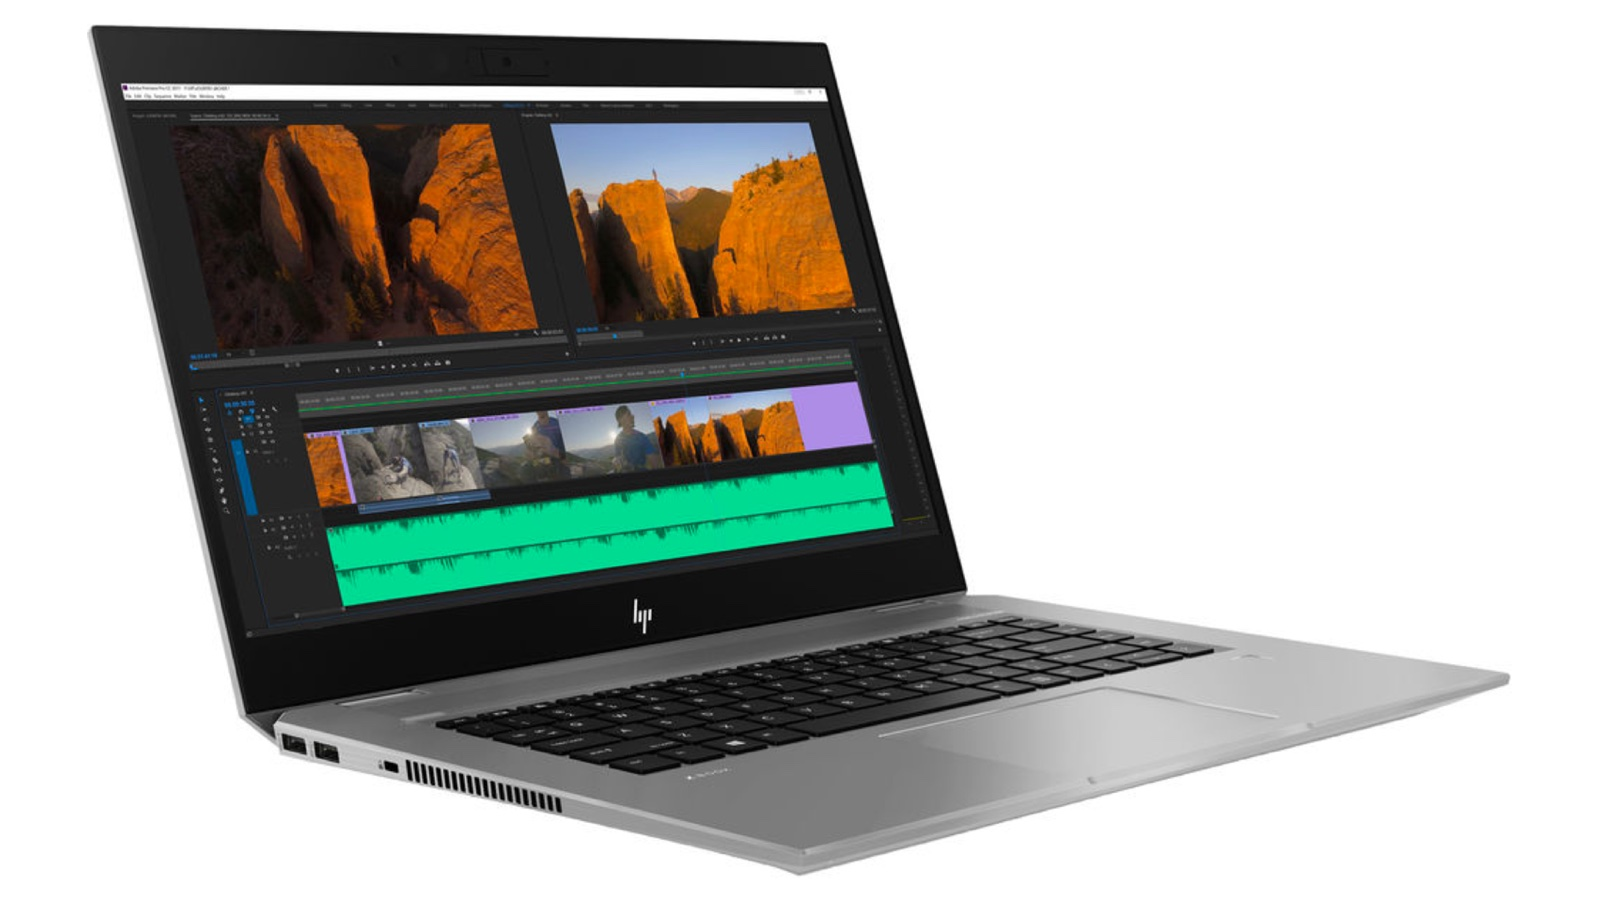 What you should look for when buying a laptop for pro video editing